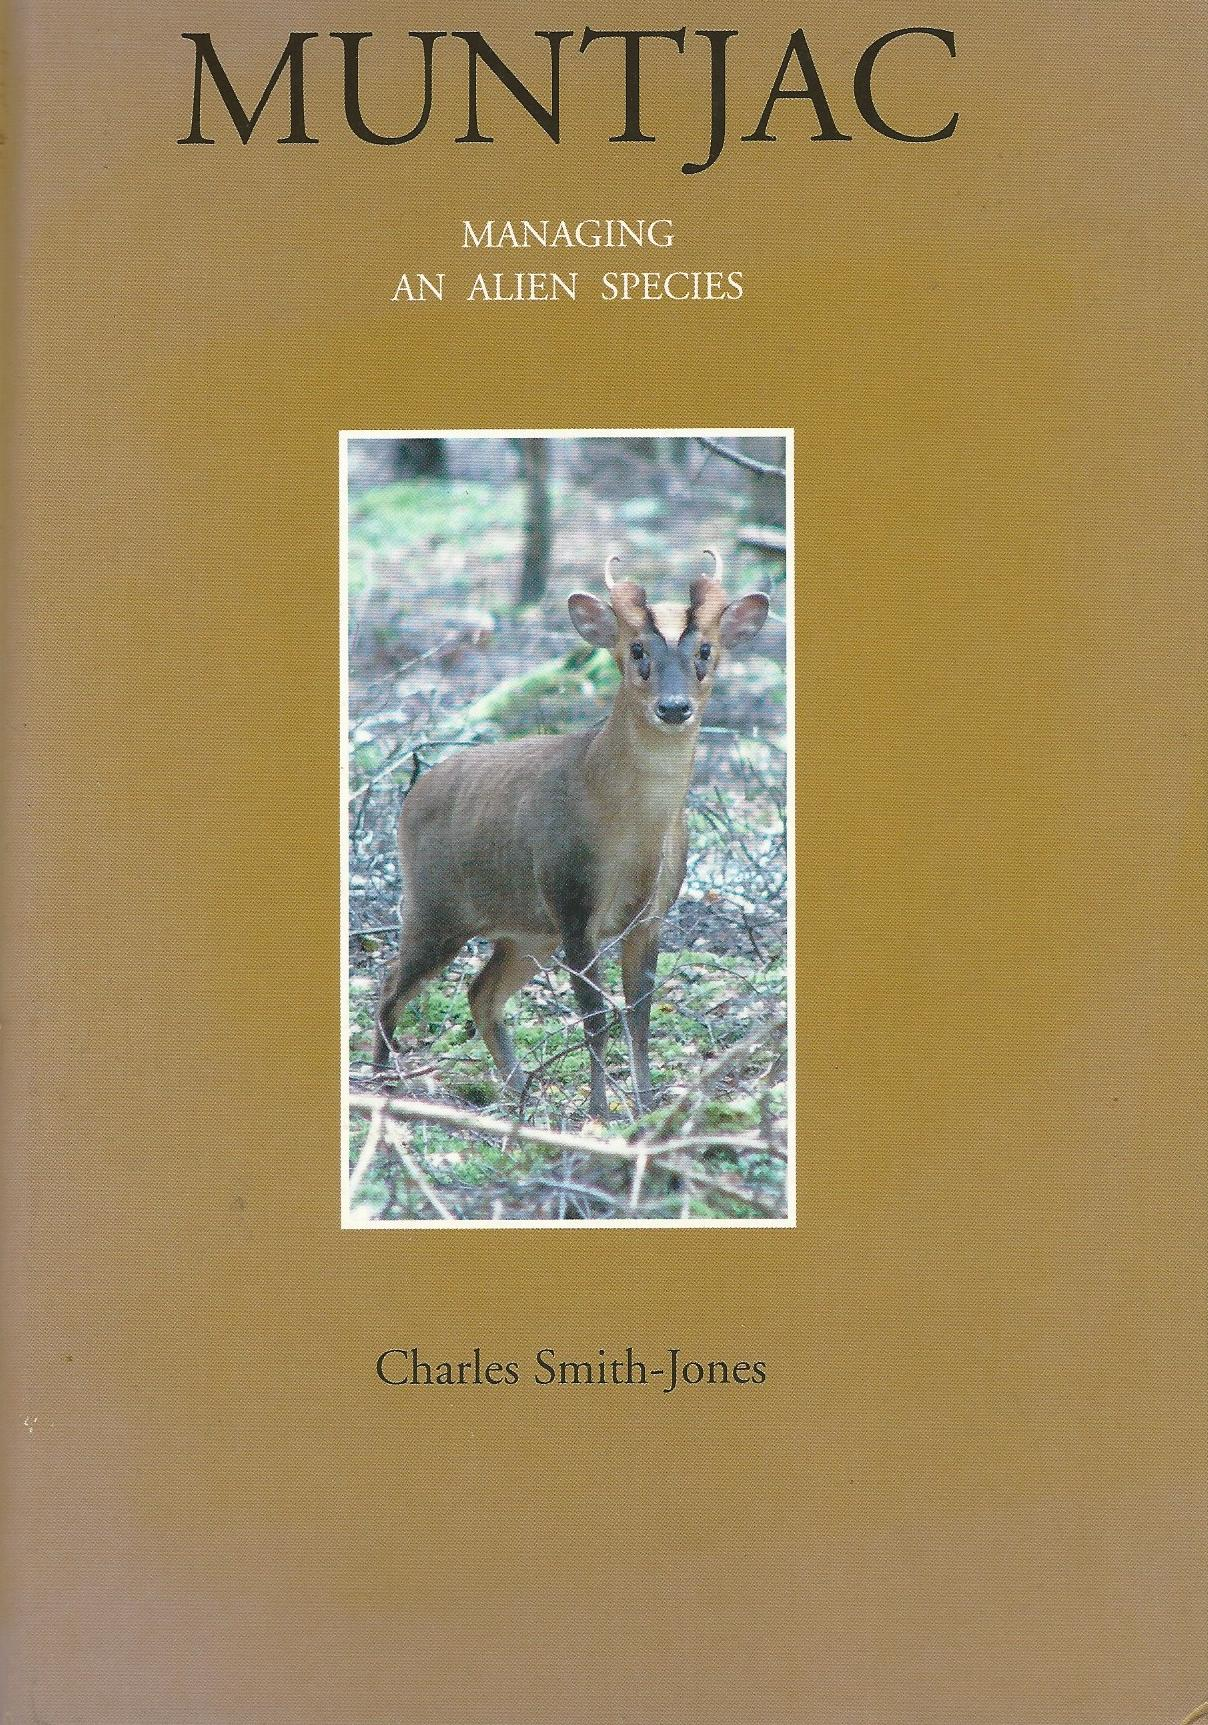 Image for Muntjac: Managing an Alien Species.